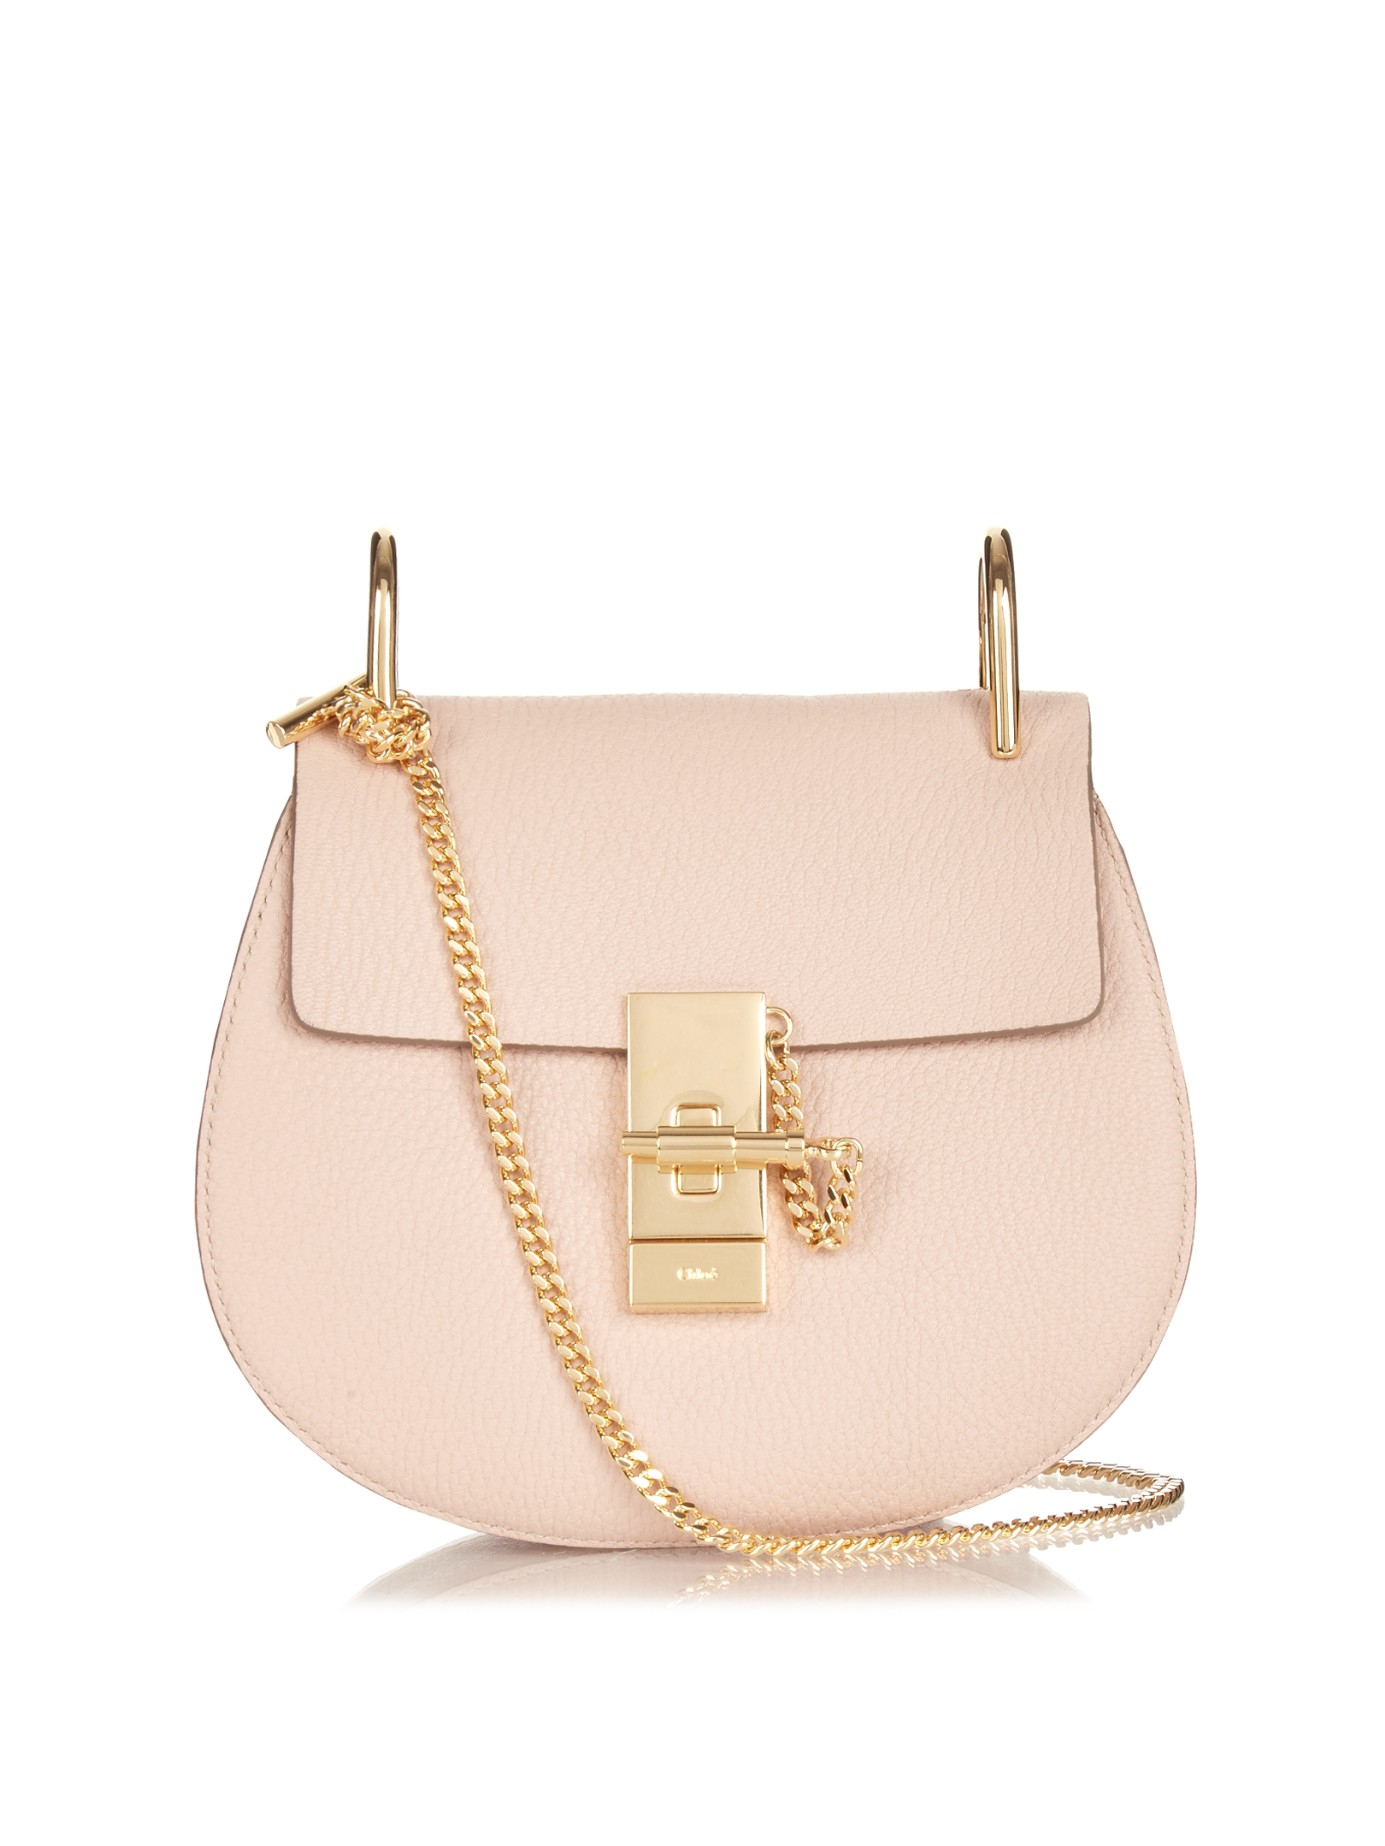 chloe replicas - Chlo�� Drew Mini Leather Cross-Body Bag in Pink (LIGHT PINK) | Lyst